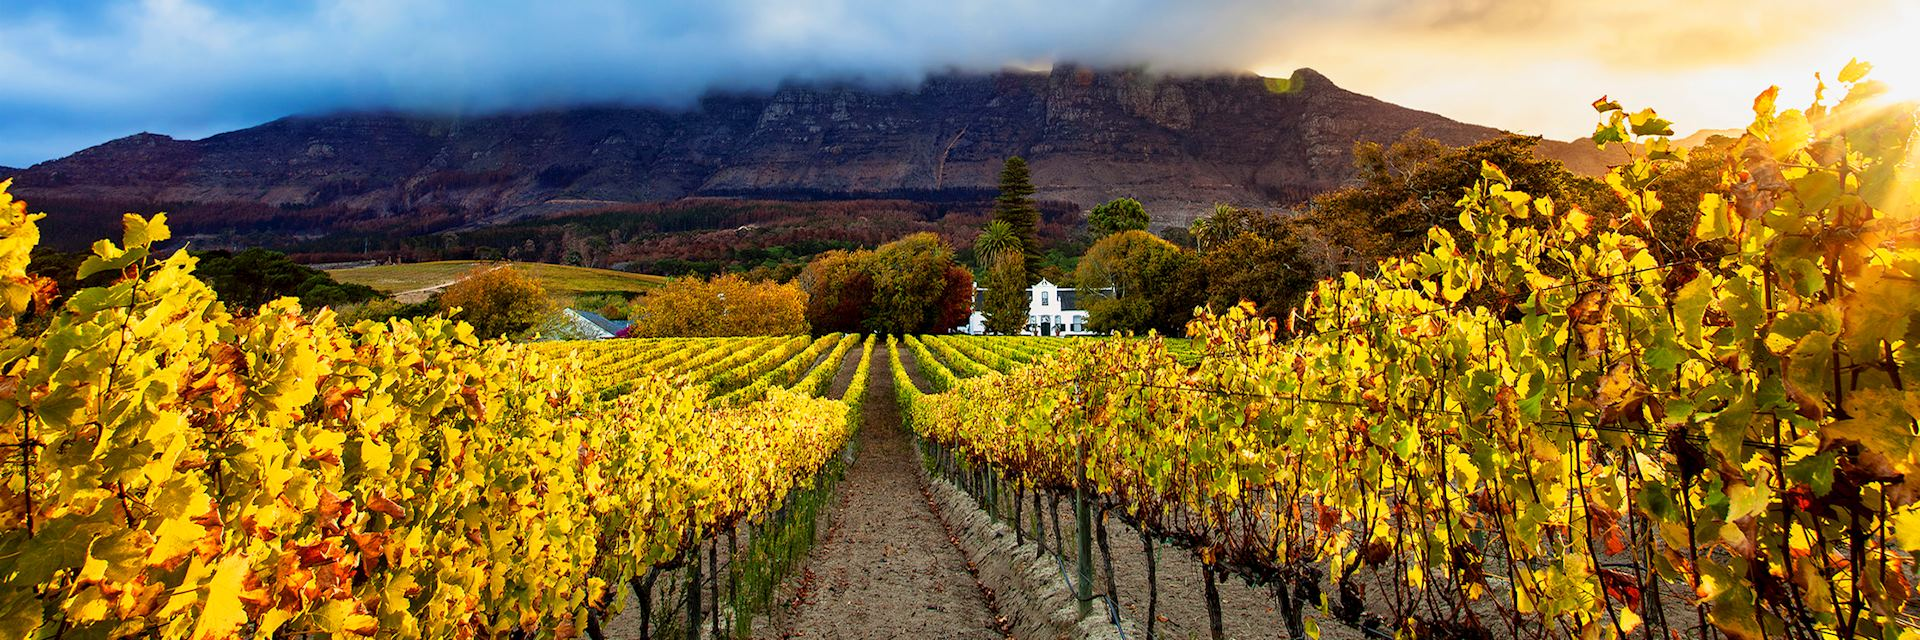 Autumn vineyards, Cape Town, South Africa